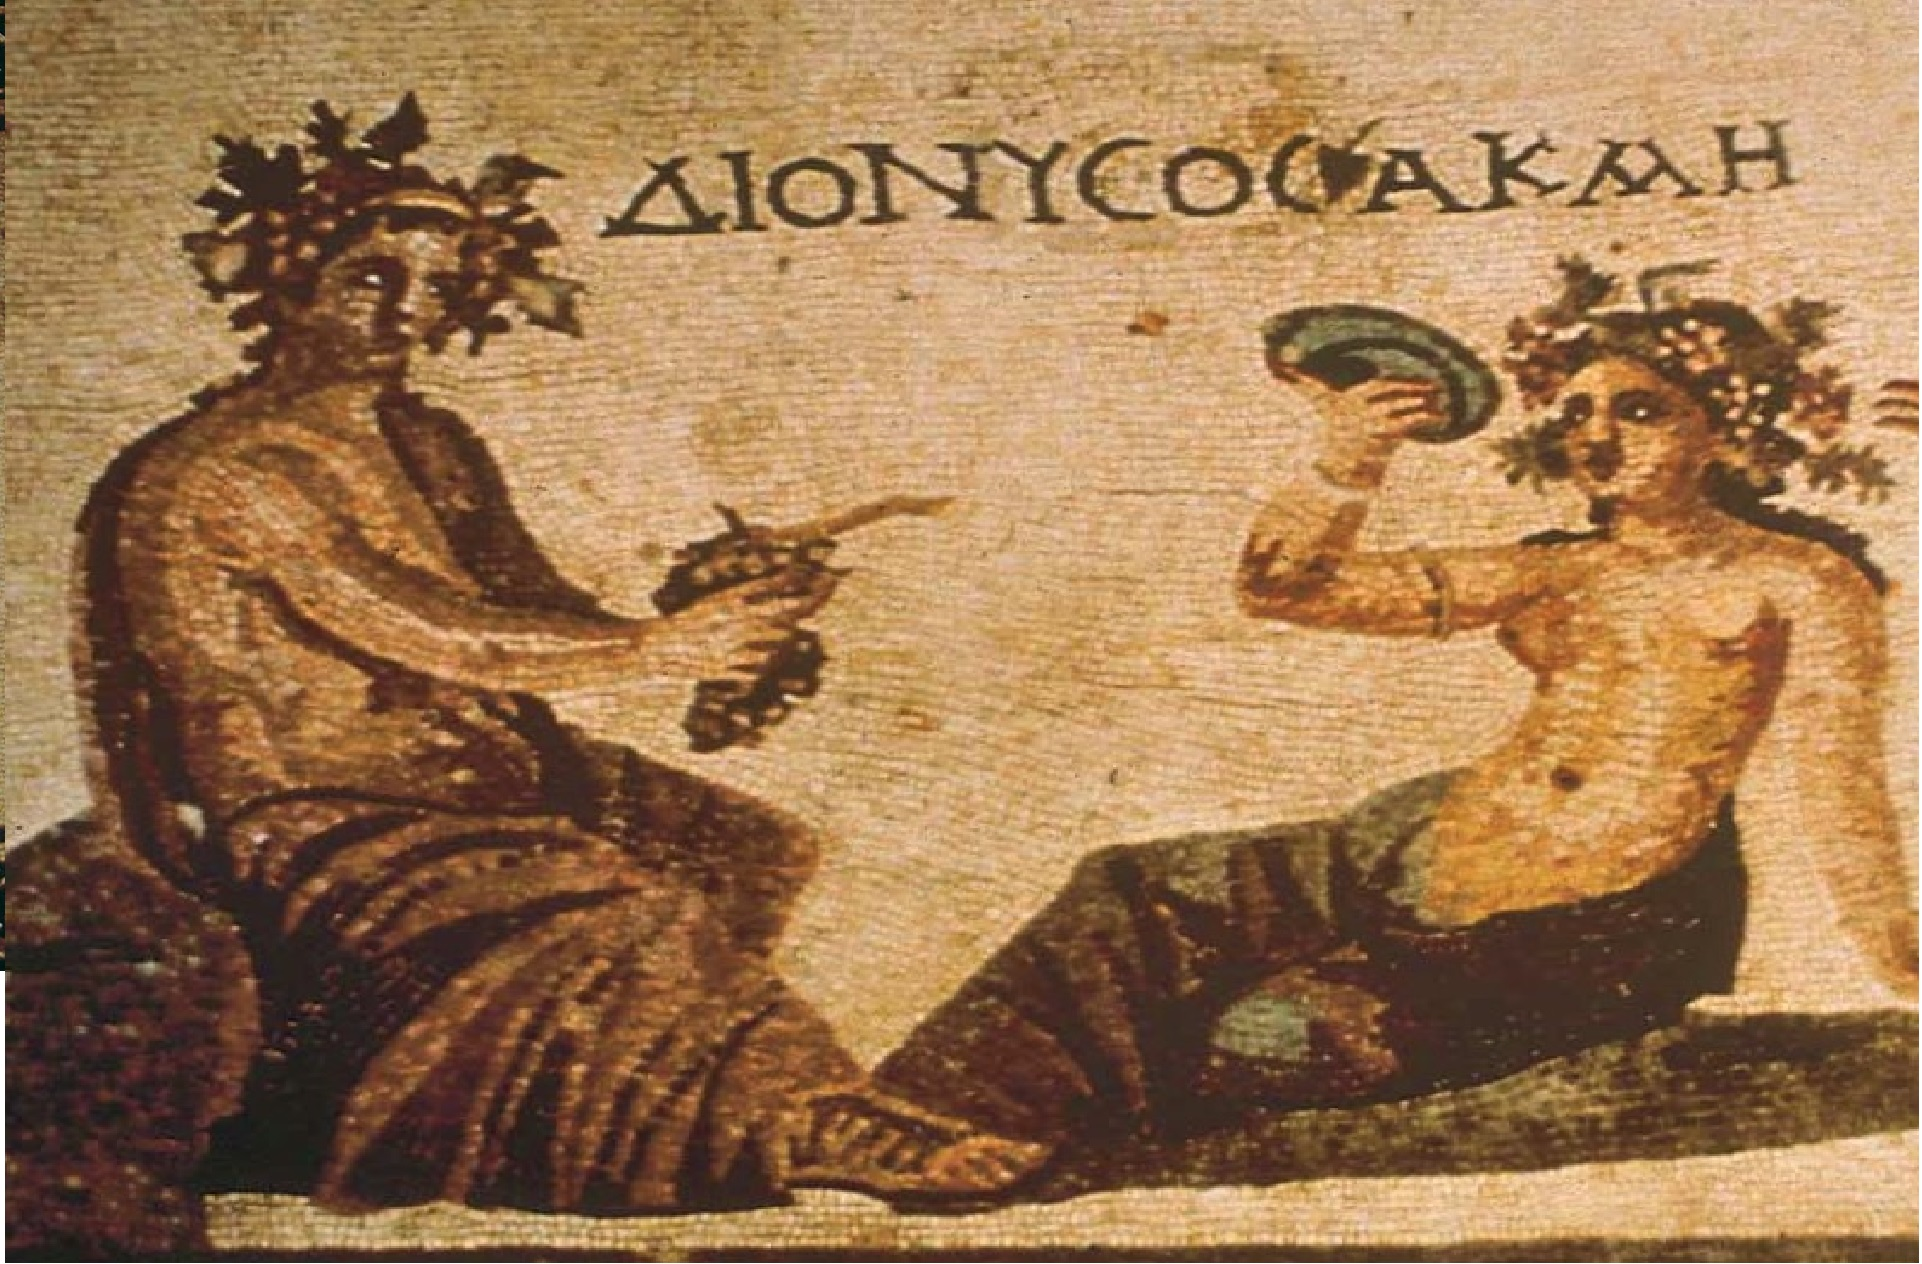 IN THE ROOTS OF WINE- Ancient Greek history, mythology & art EDUCULTURE